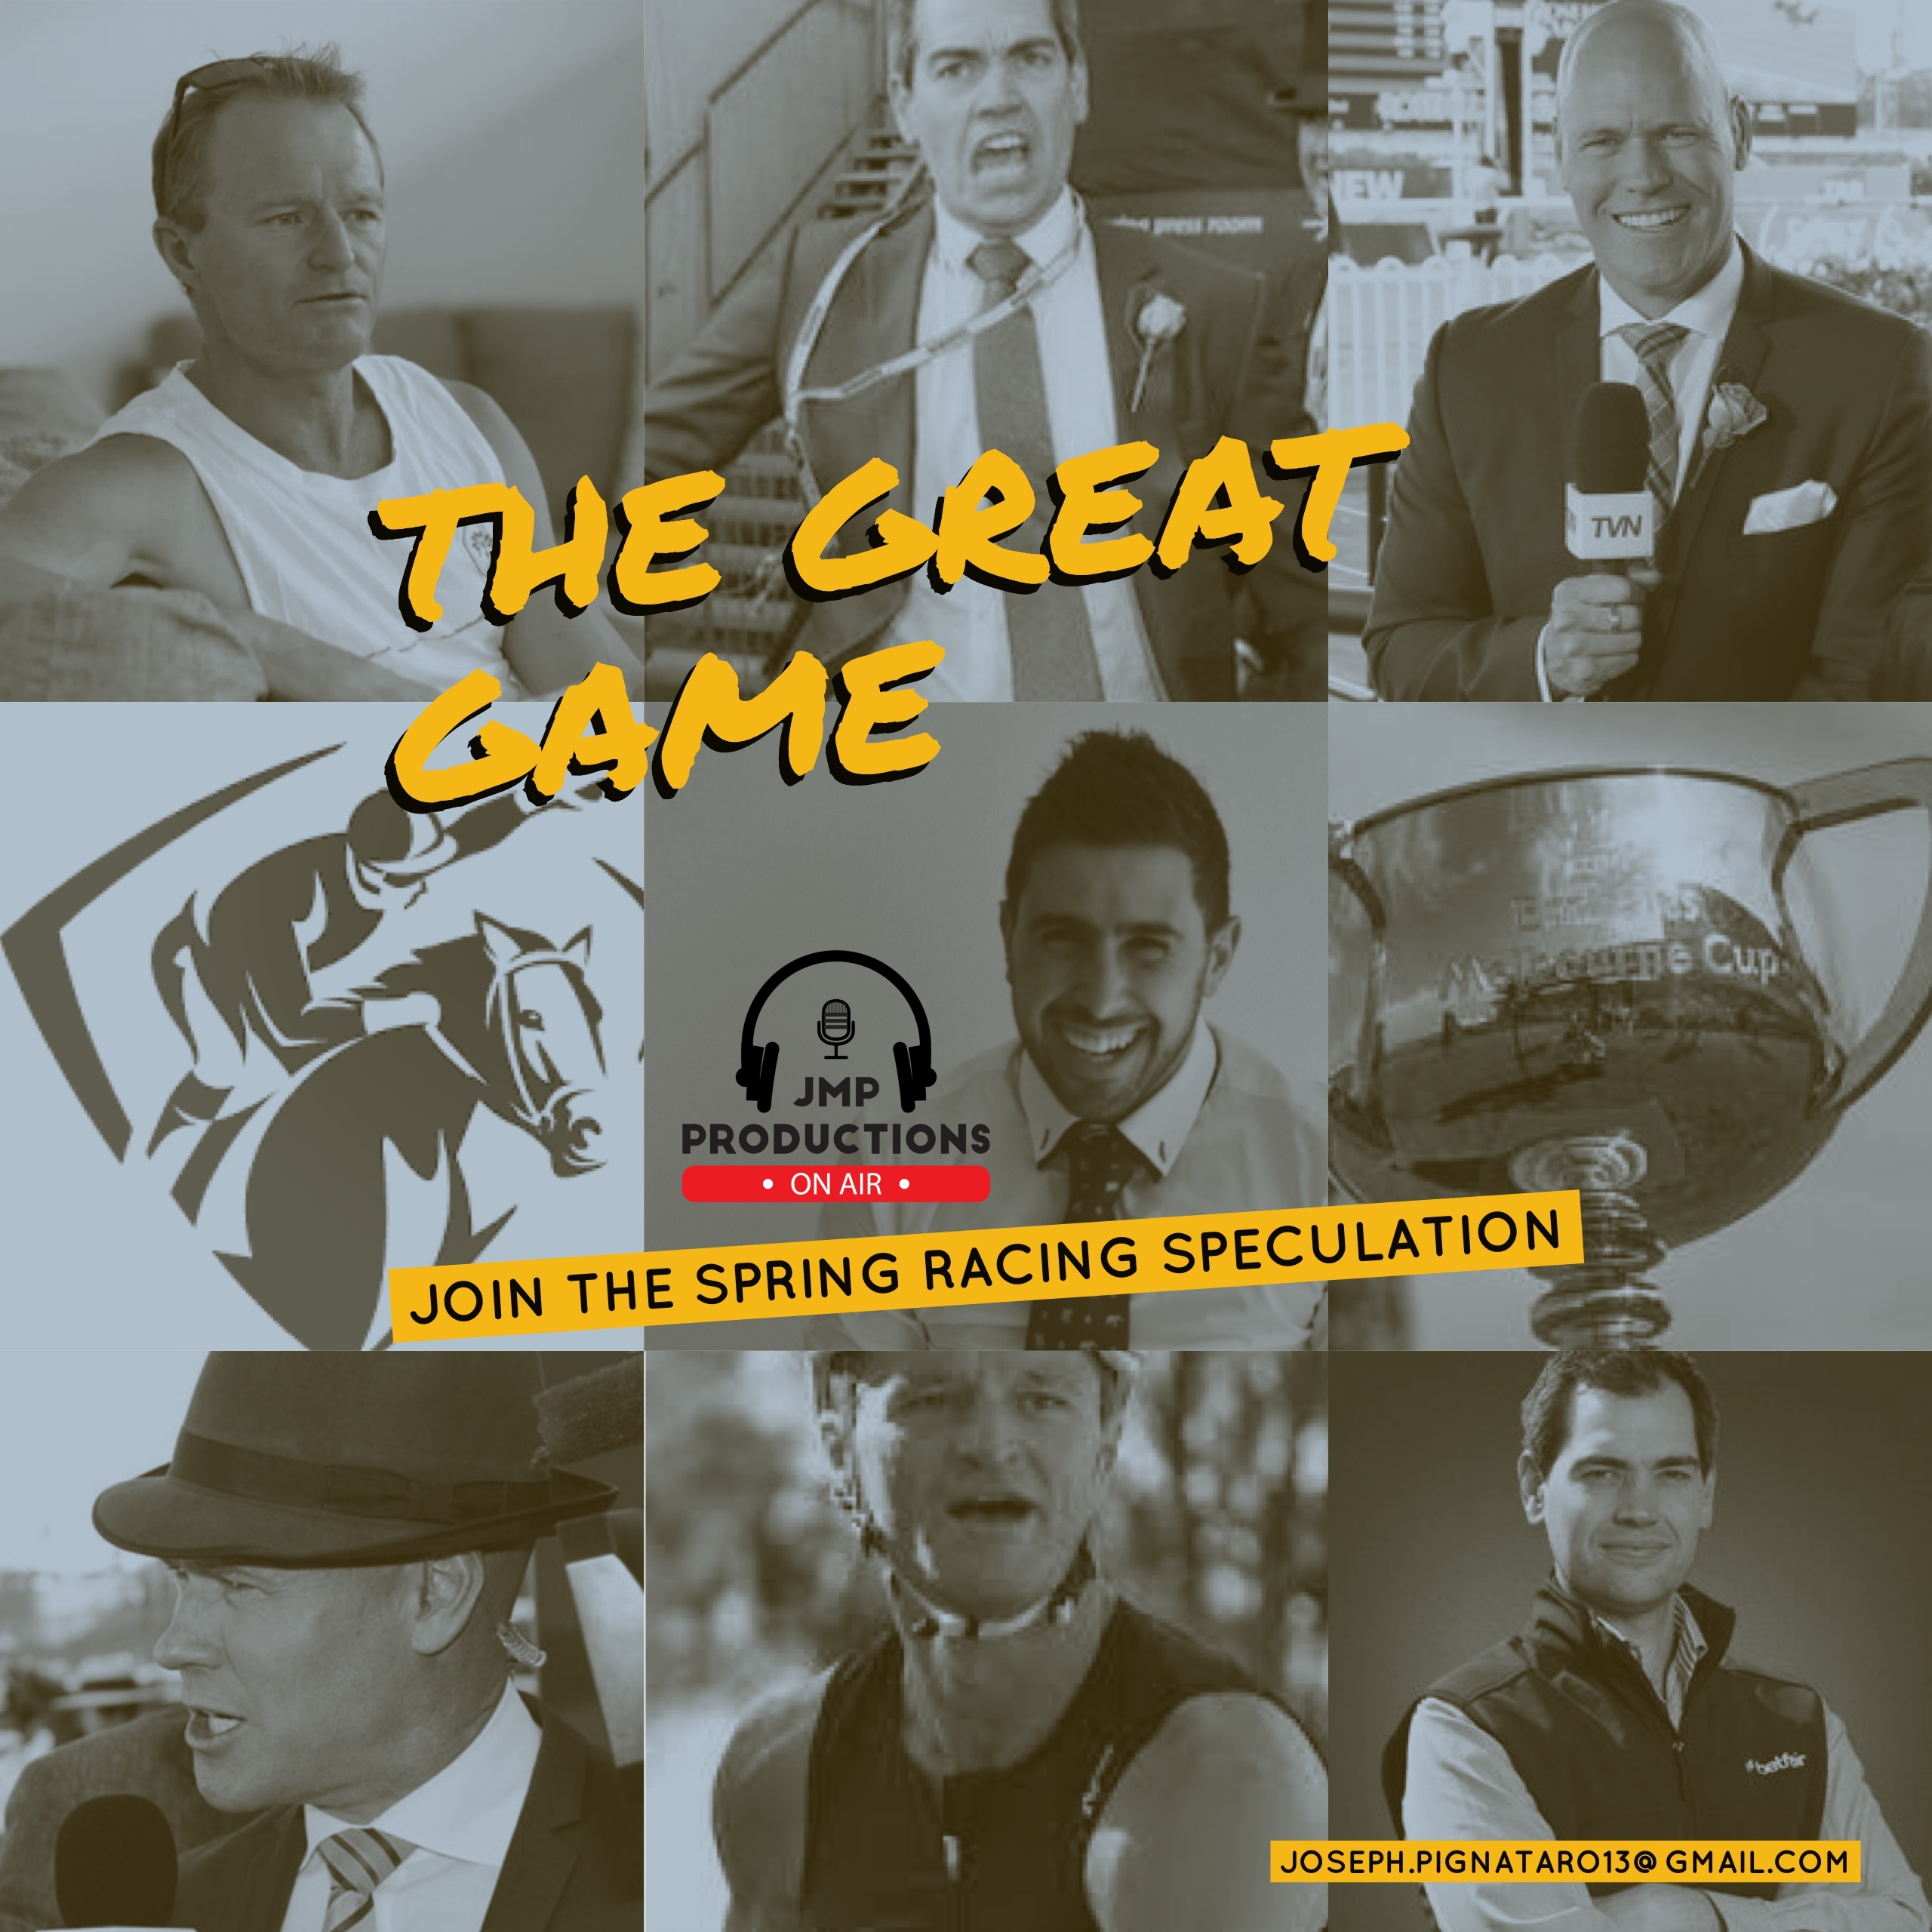 Episode 11 - The Great Game (February 28, 2019)